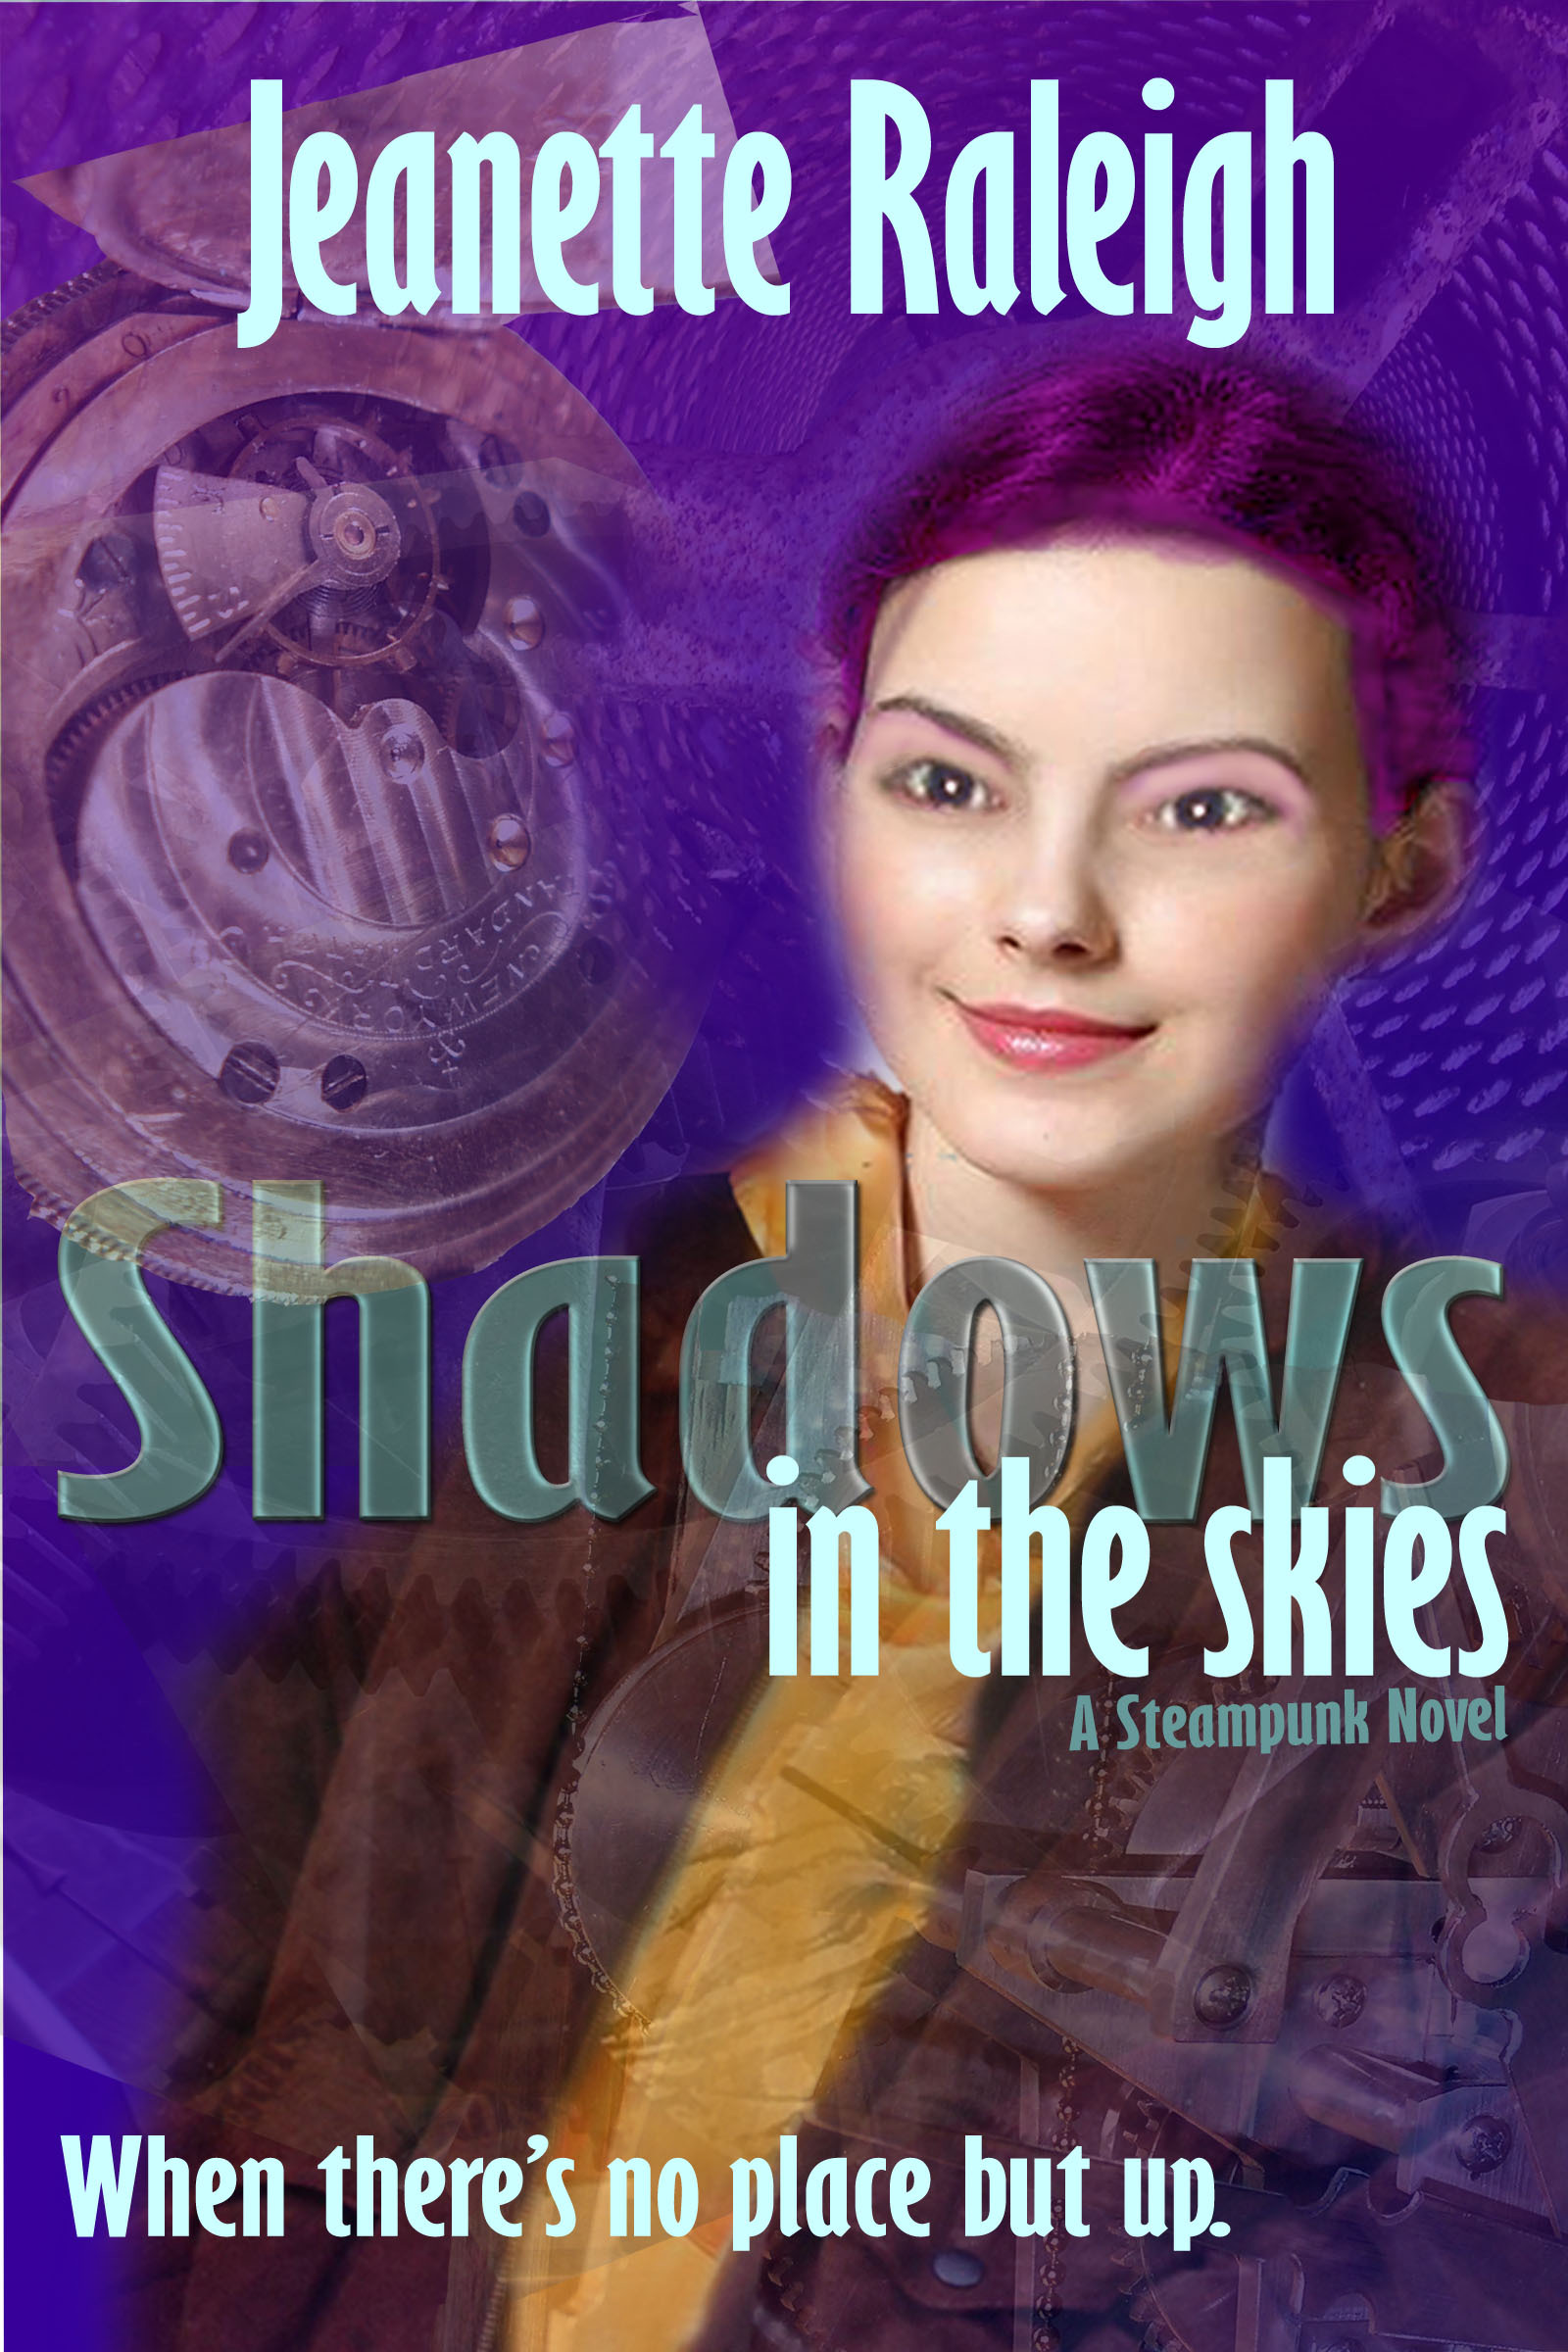 Shadows in the Skies: A Steampunk Novel